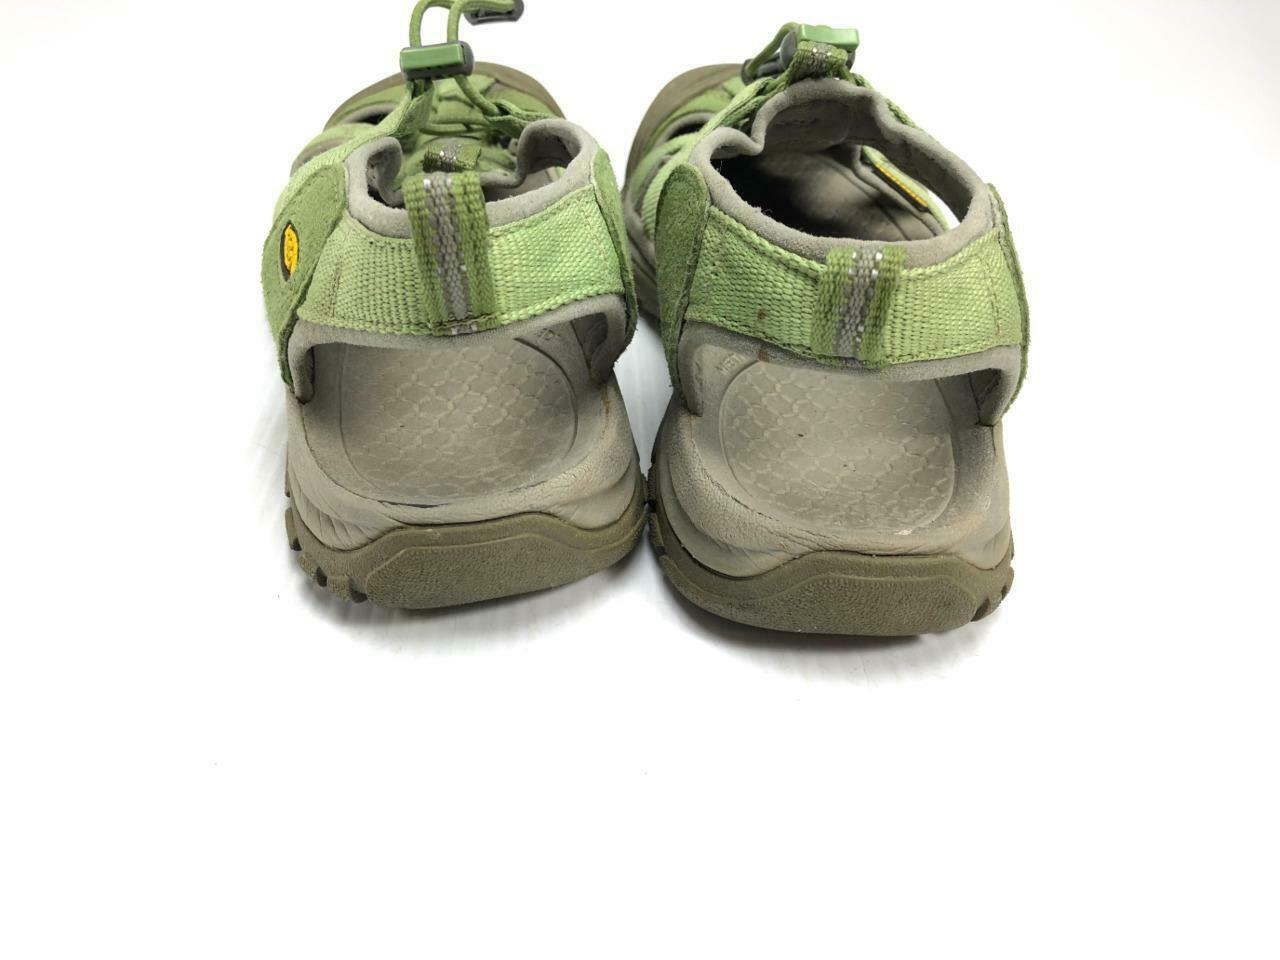 Keen Venice H2 water sandals in green womens 8 image 6